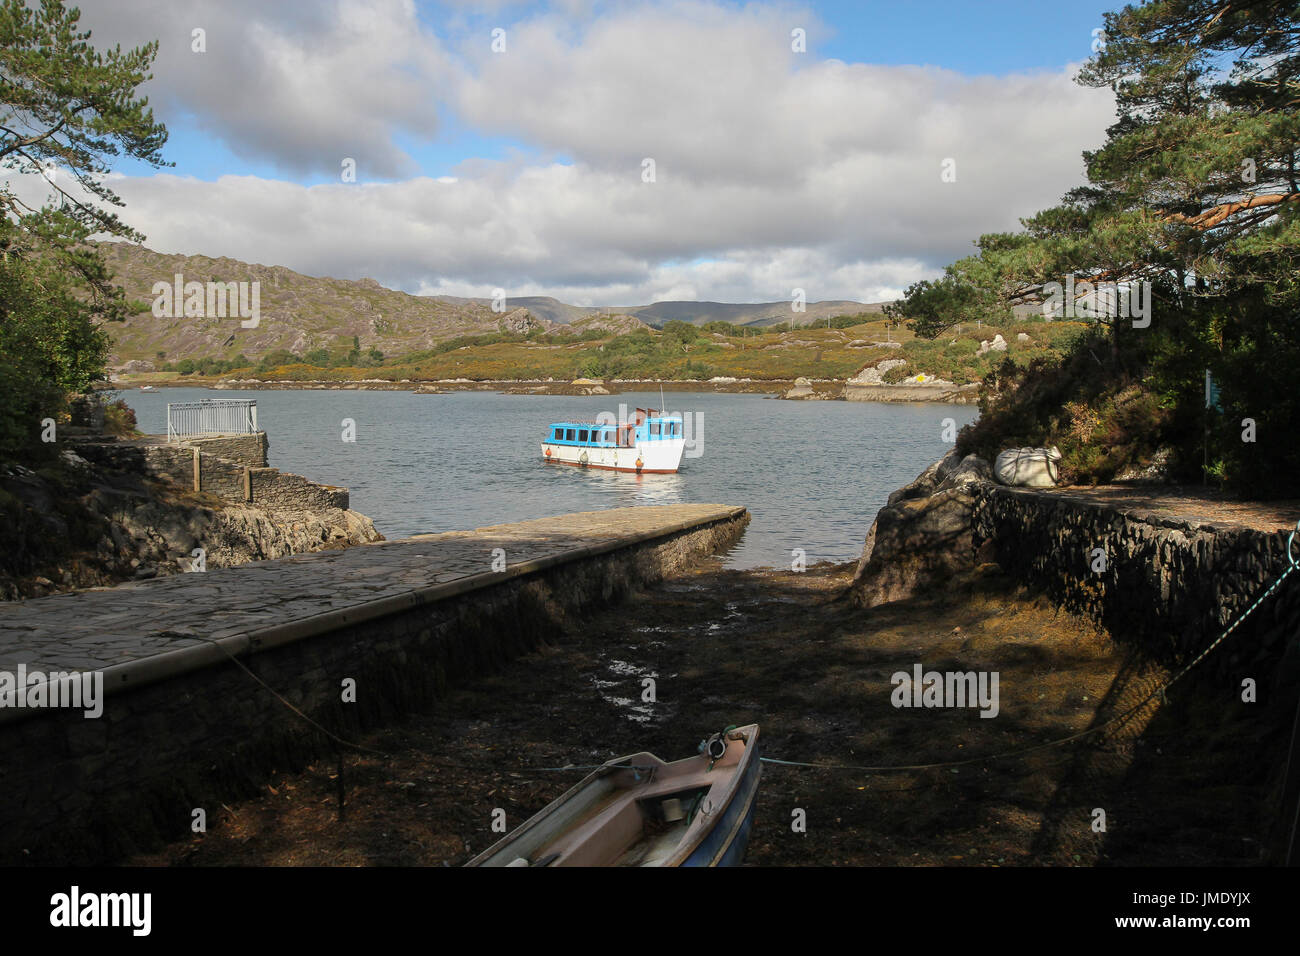 Passenger ferry at Garnish Island in Bantry Bay, West Cork, Ireland. - Stock Image